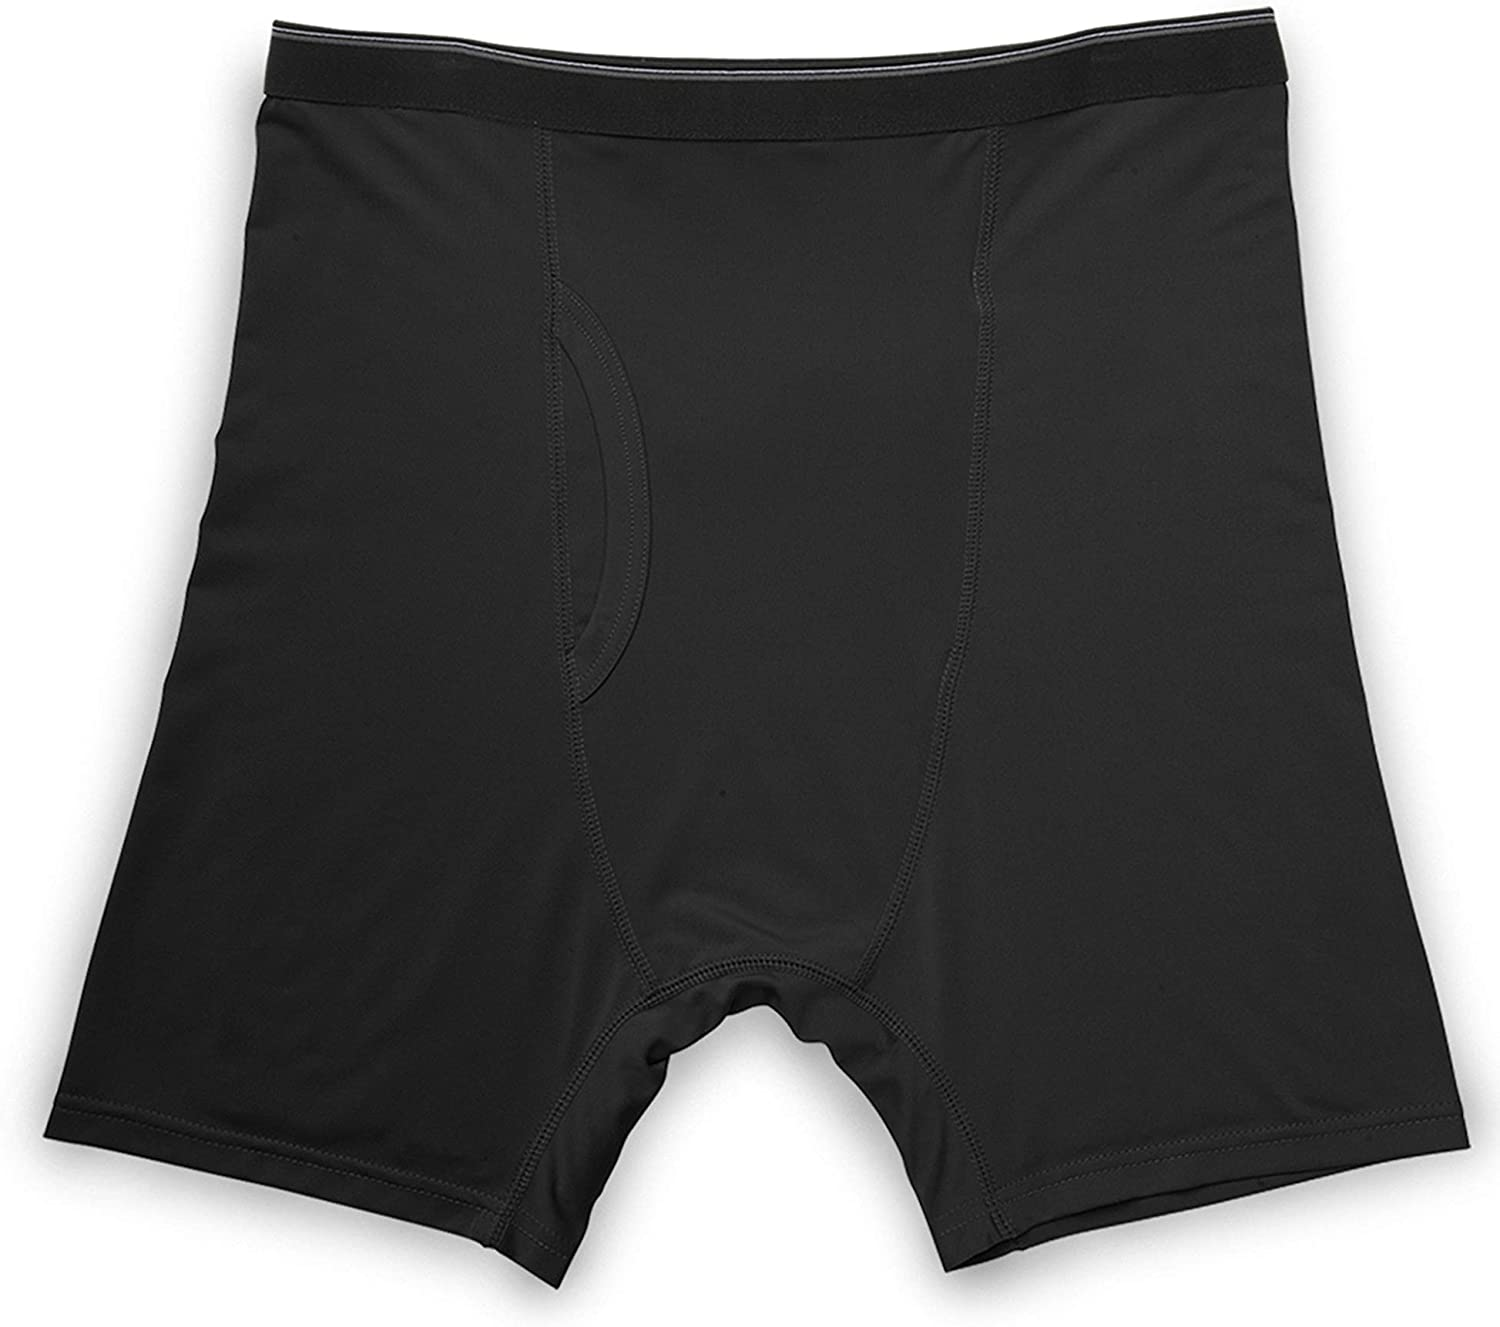 Harbor Bay by DXL Big and Tall Performance Boxer Brief